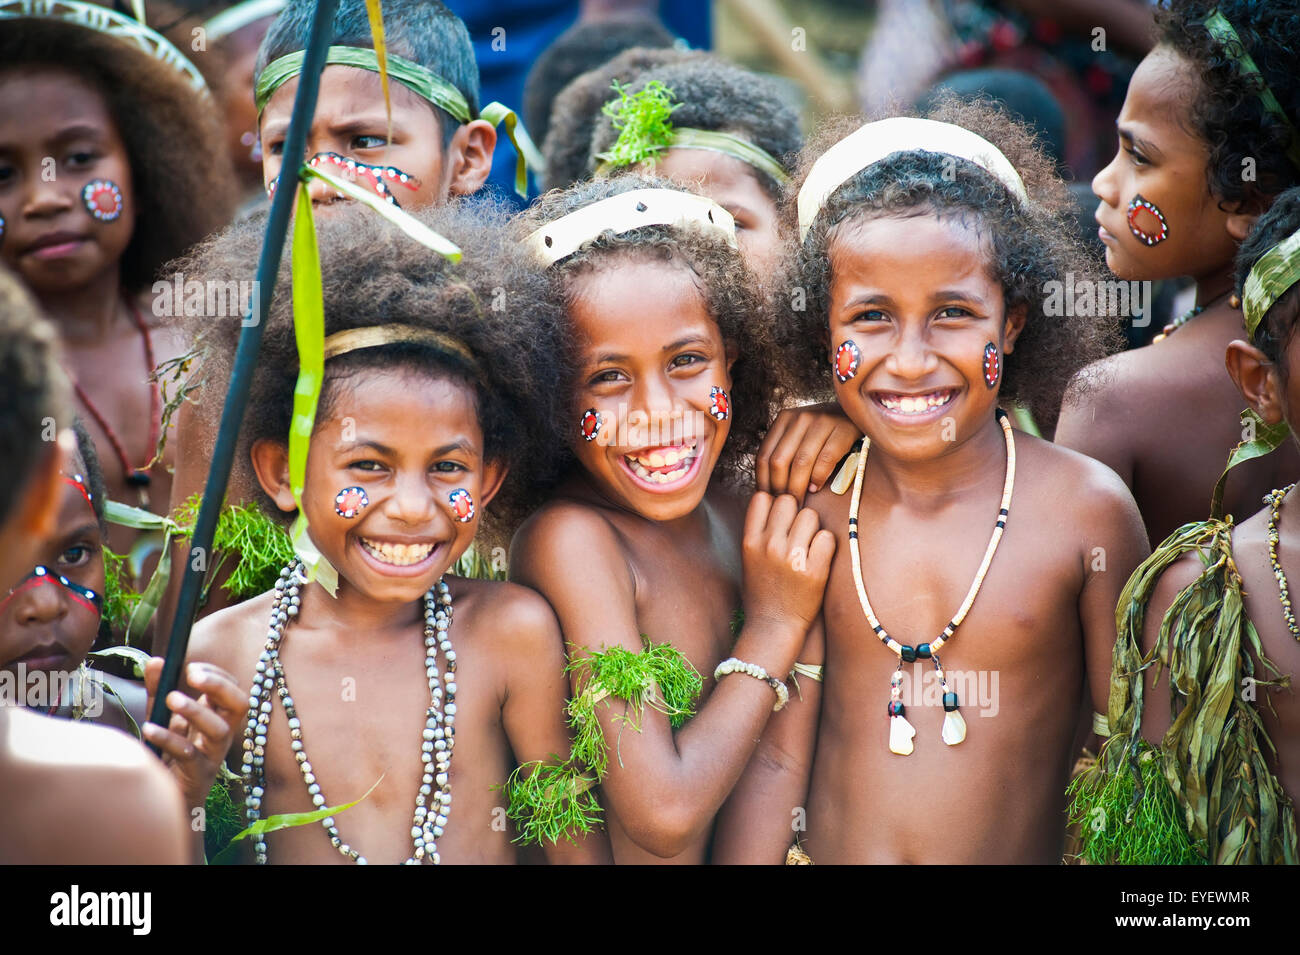 Nude Teens And Women In Papua New Guinea 81